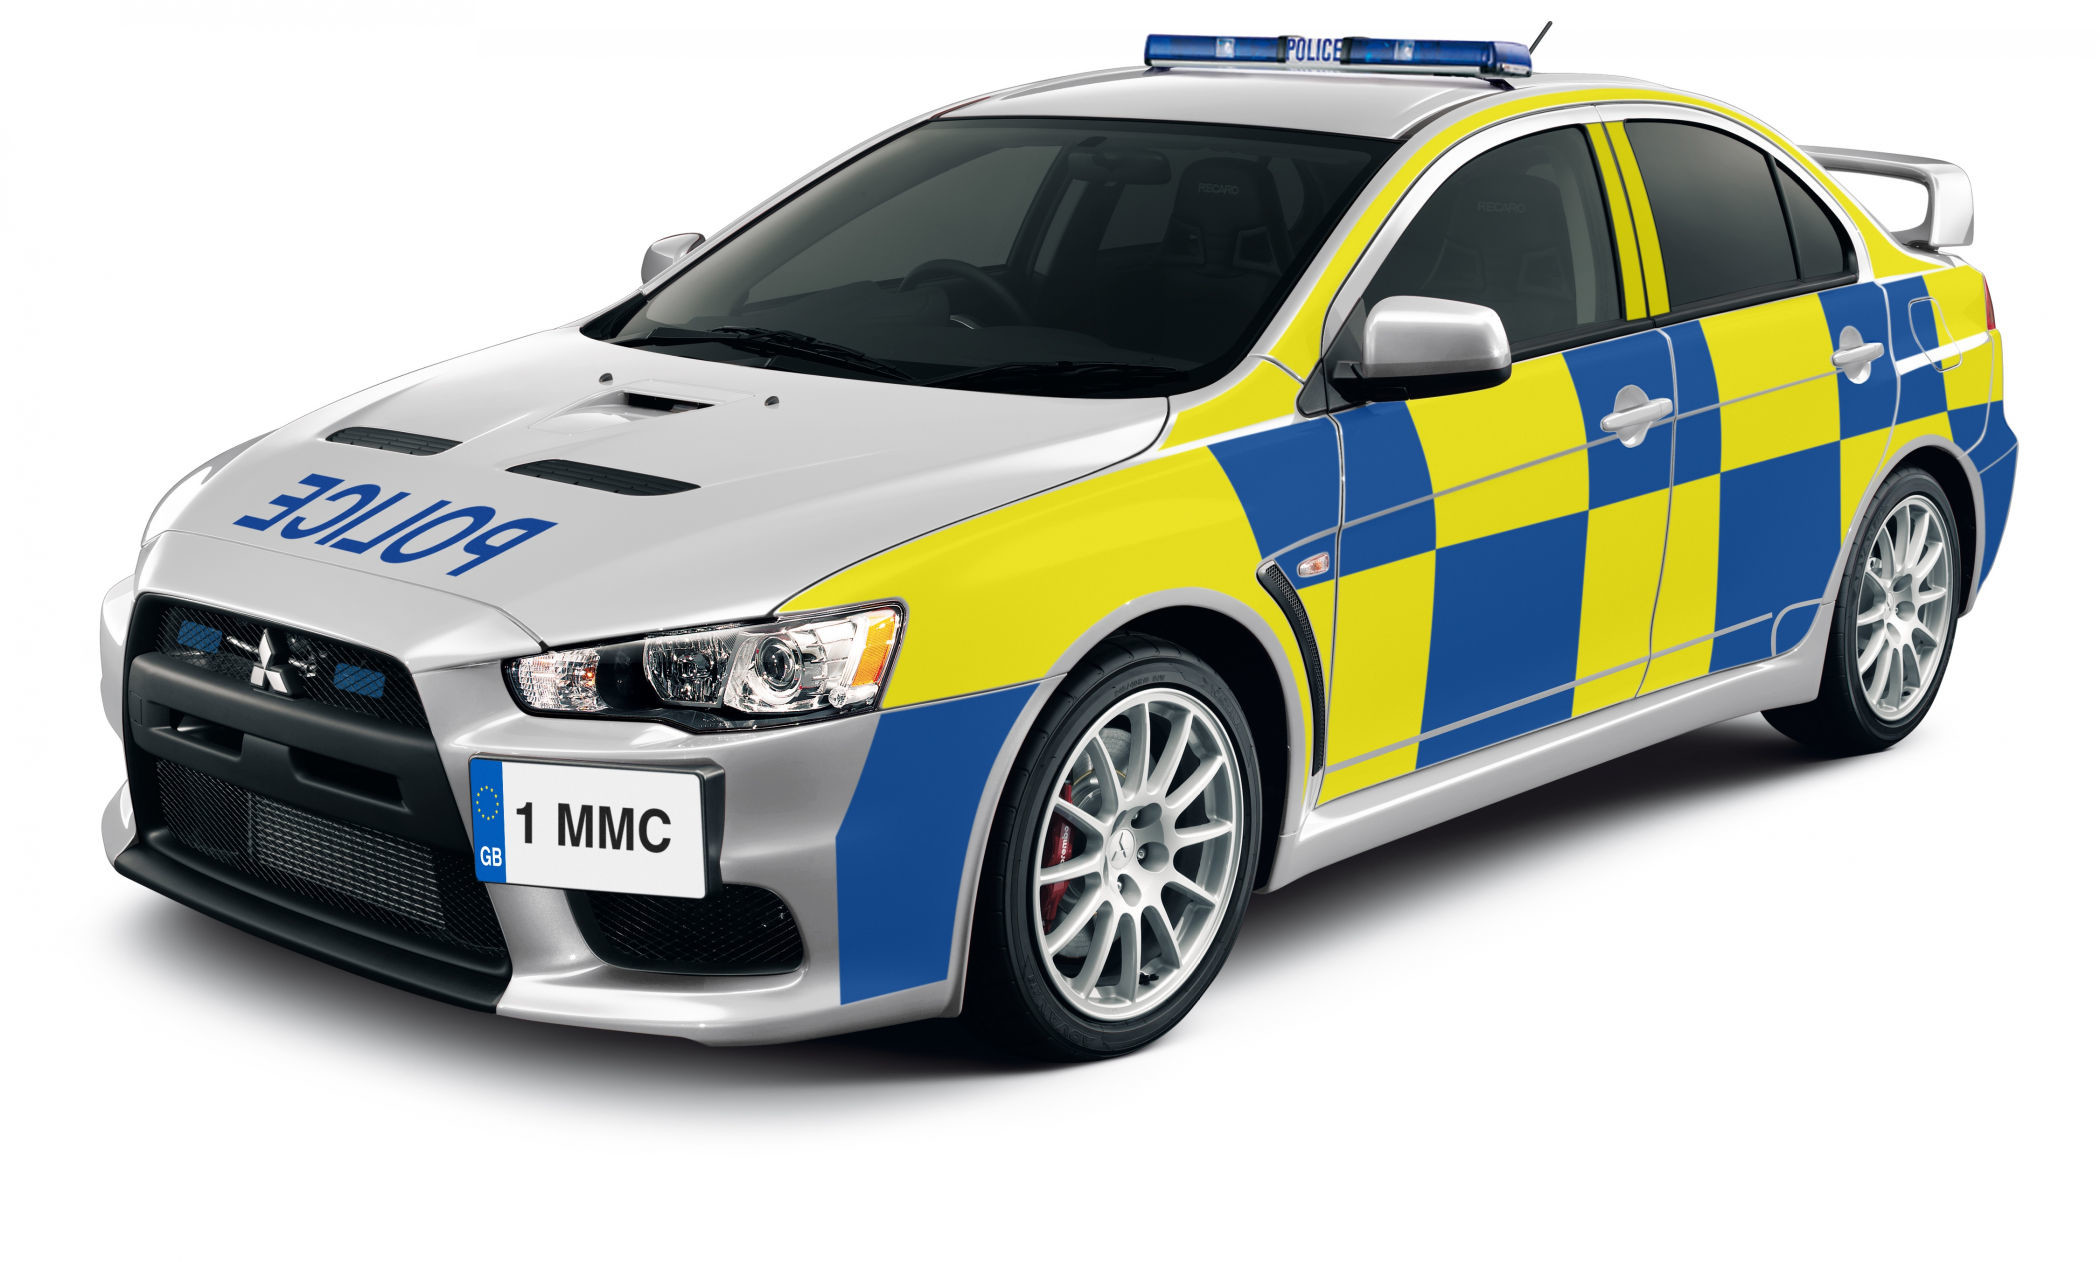 UK POLICE CAR – Google Search